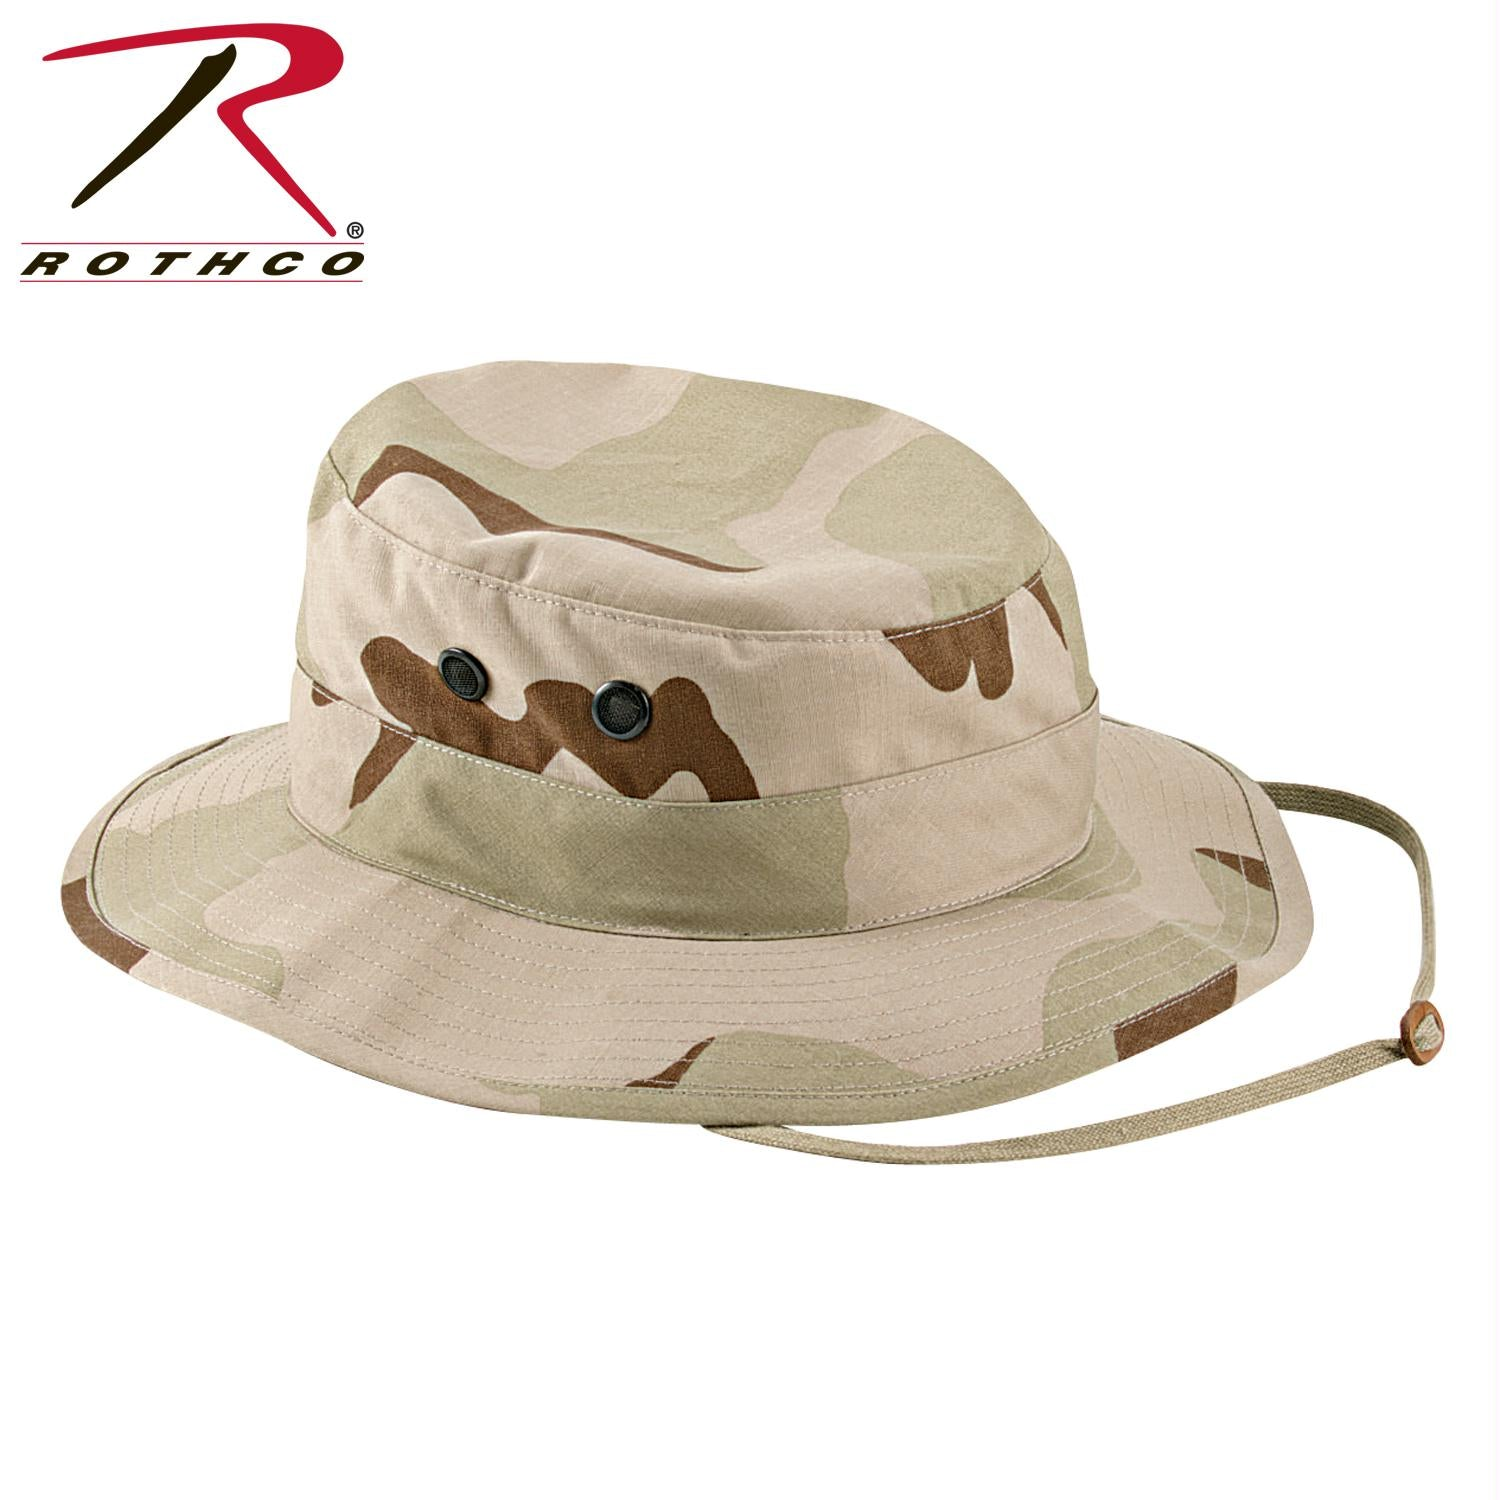 Rothco Poly/Cotton Rip-Stop Boonie Hat - Tri-Color Desert Camo / 7